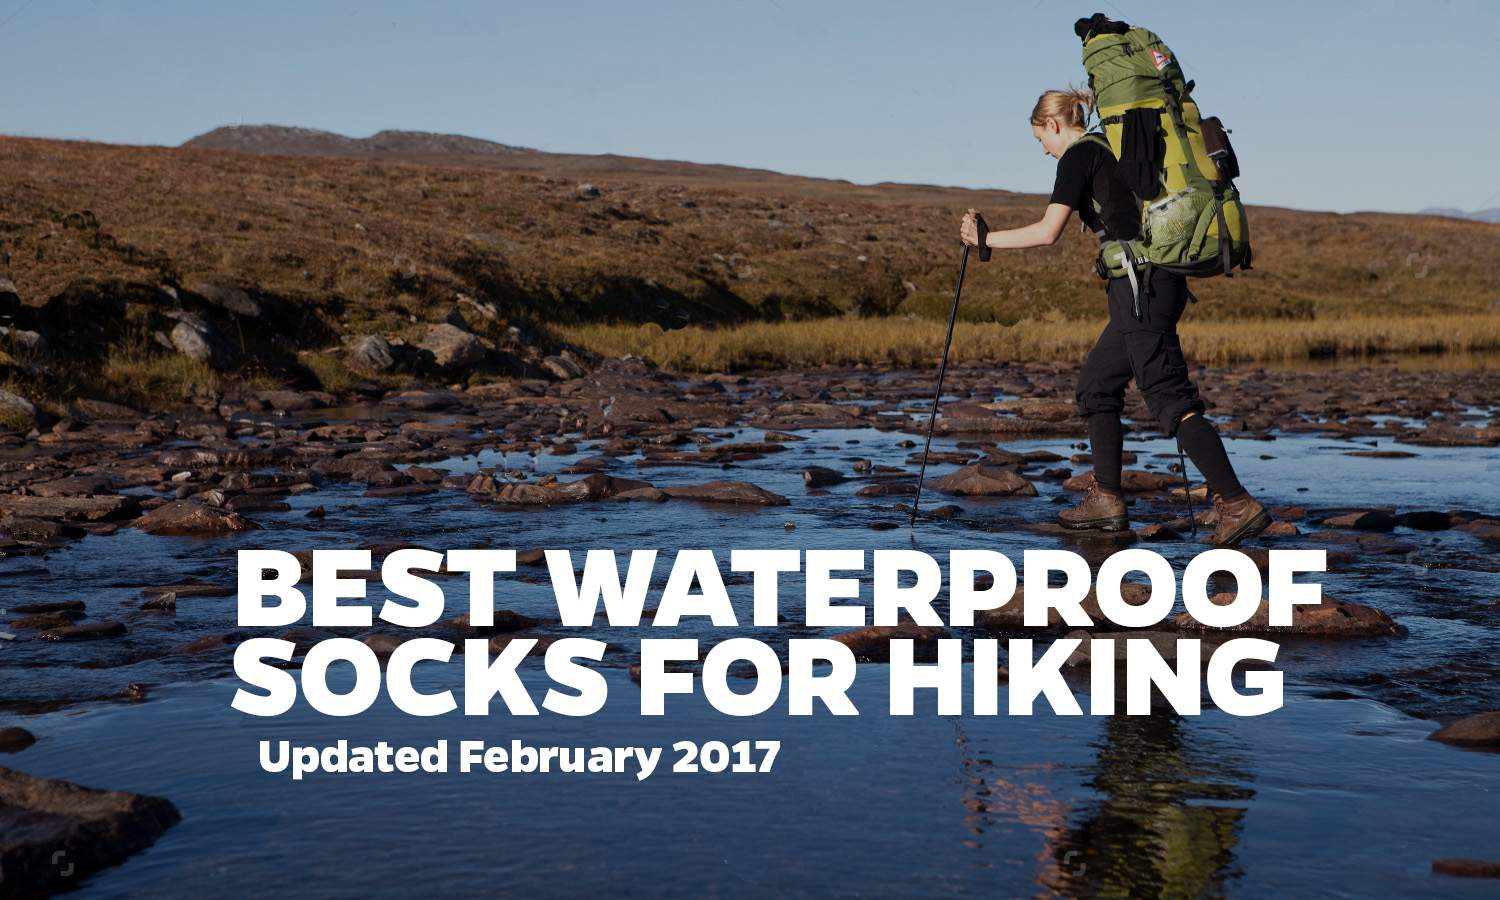 Best Waterproof Socks 2017 for Hiking